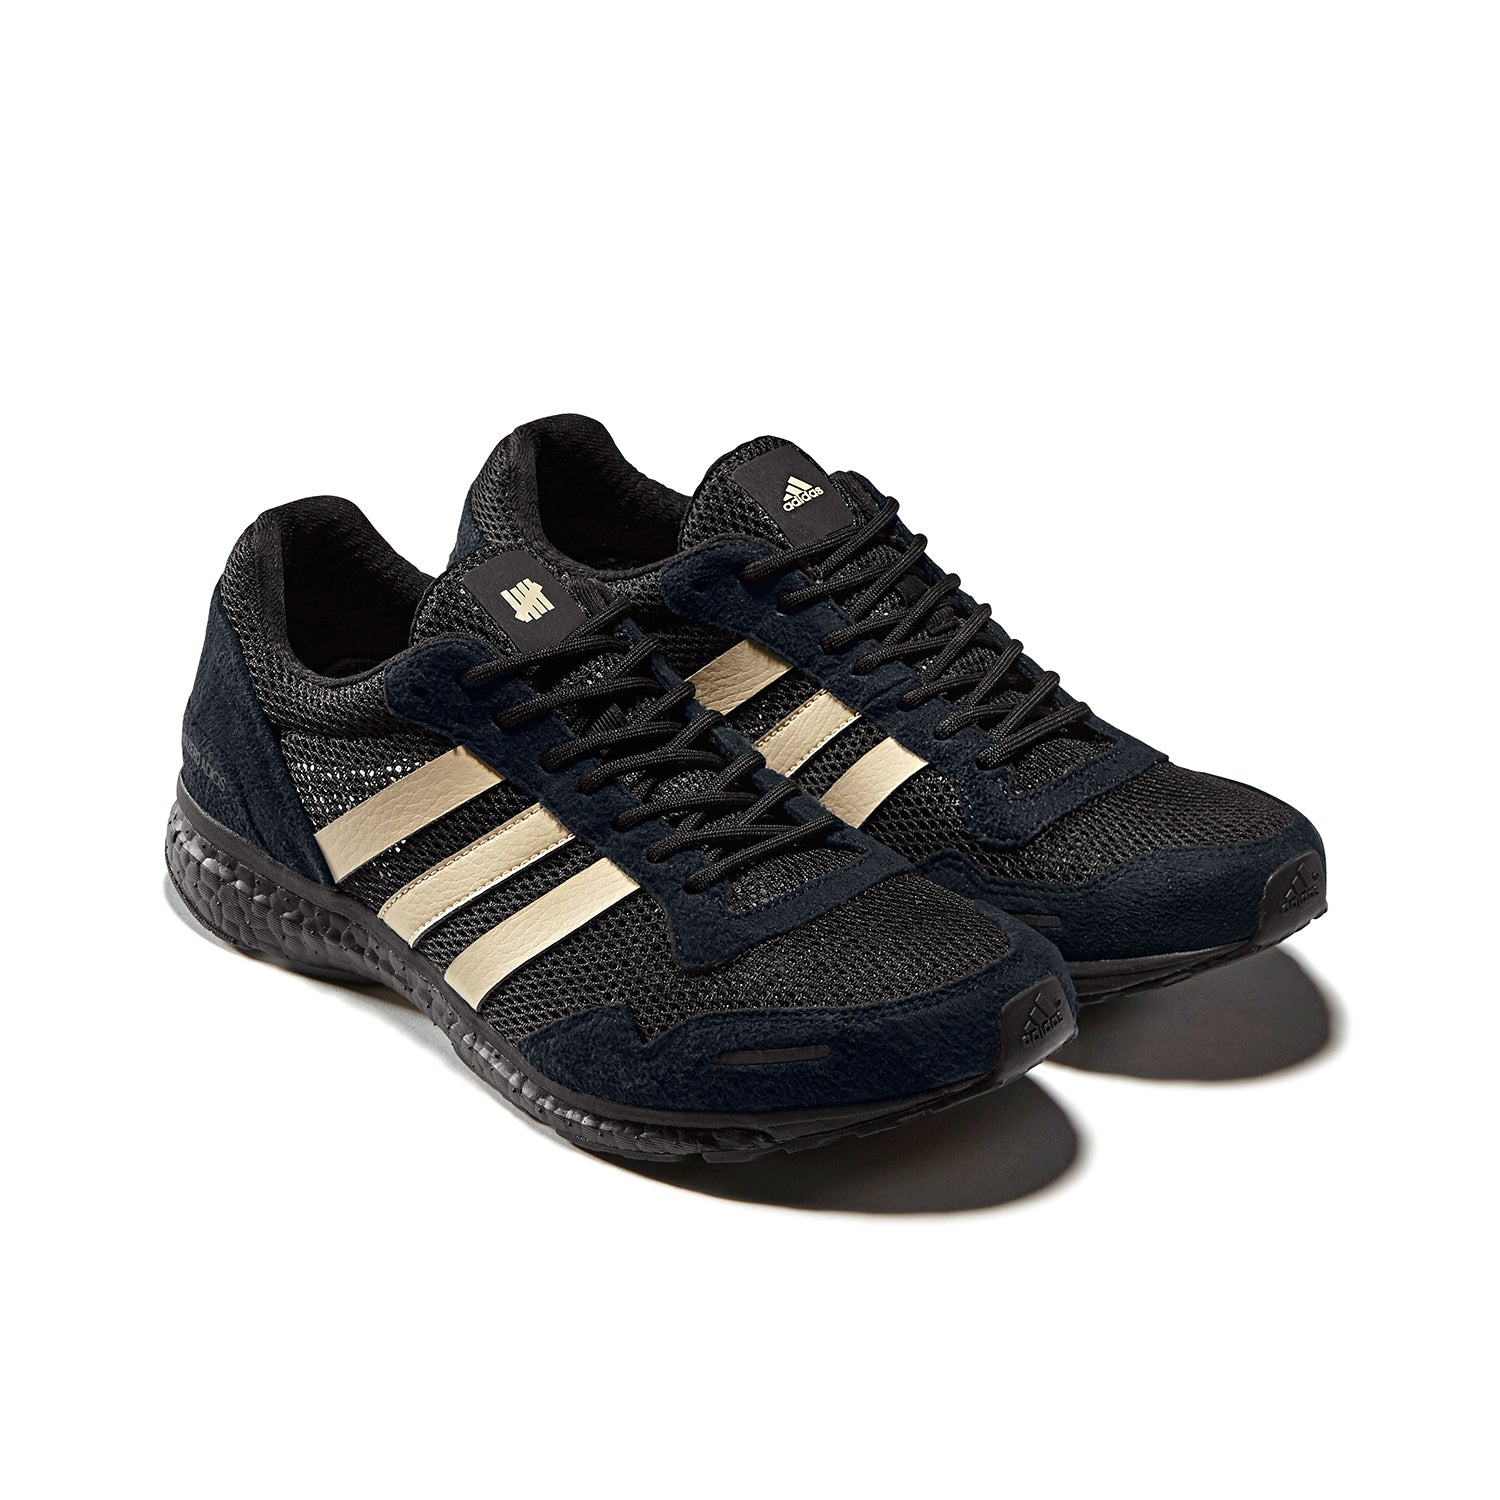 ADIZERO ADIOS UNDEFEATED BLACK